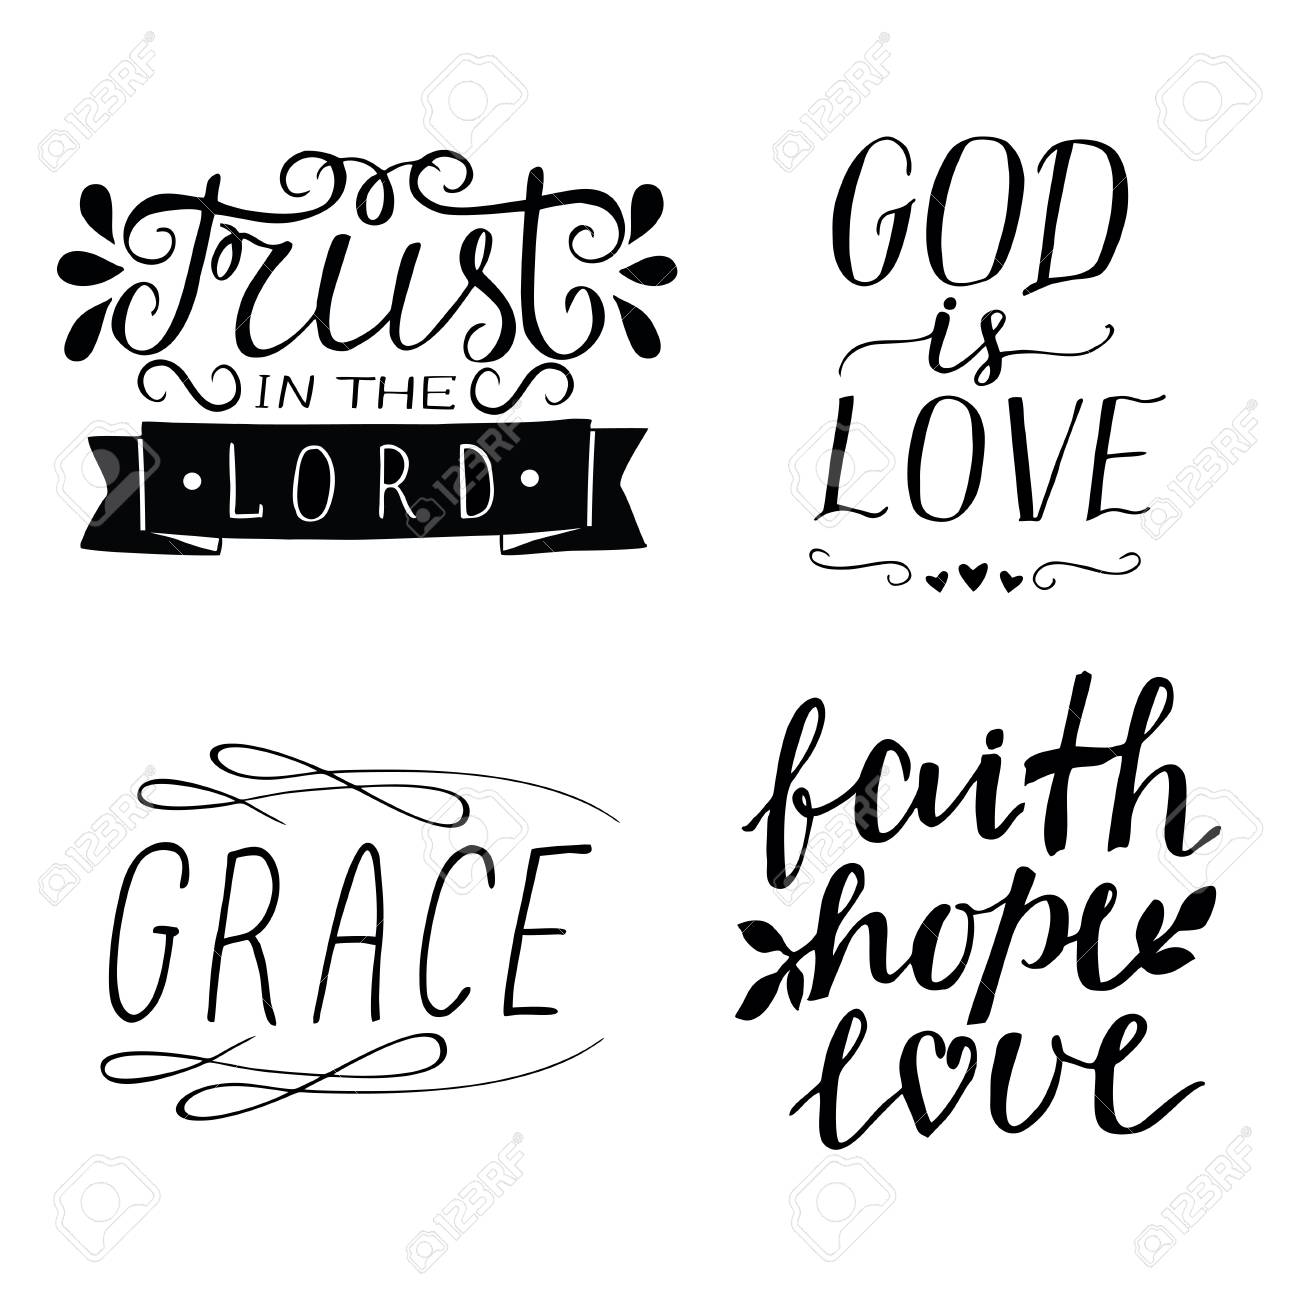 Image of: Moving Set Of Hand Lettering Christian Quotes God Is Love Faith Hope Love 123rfcom Set Of Hand Lettering Christian Quotes God Is Love Faith